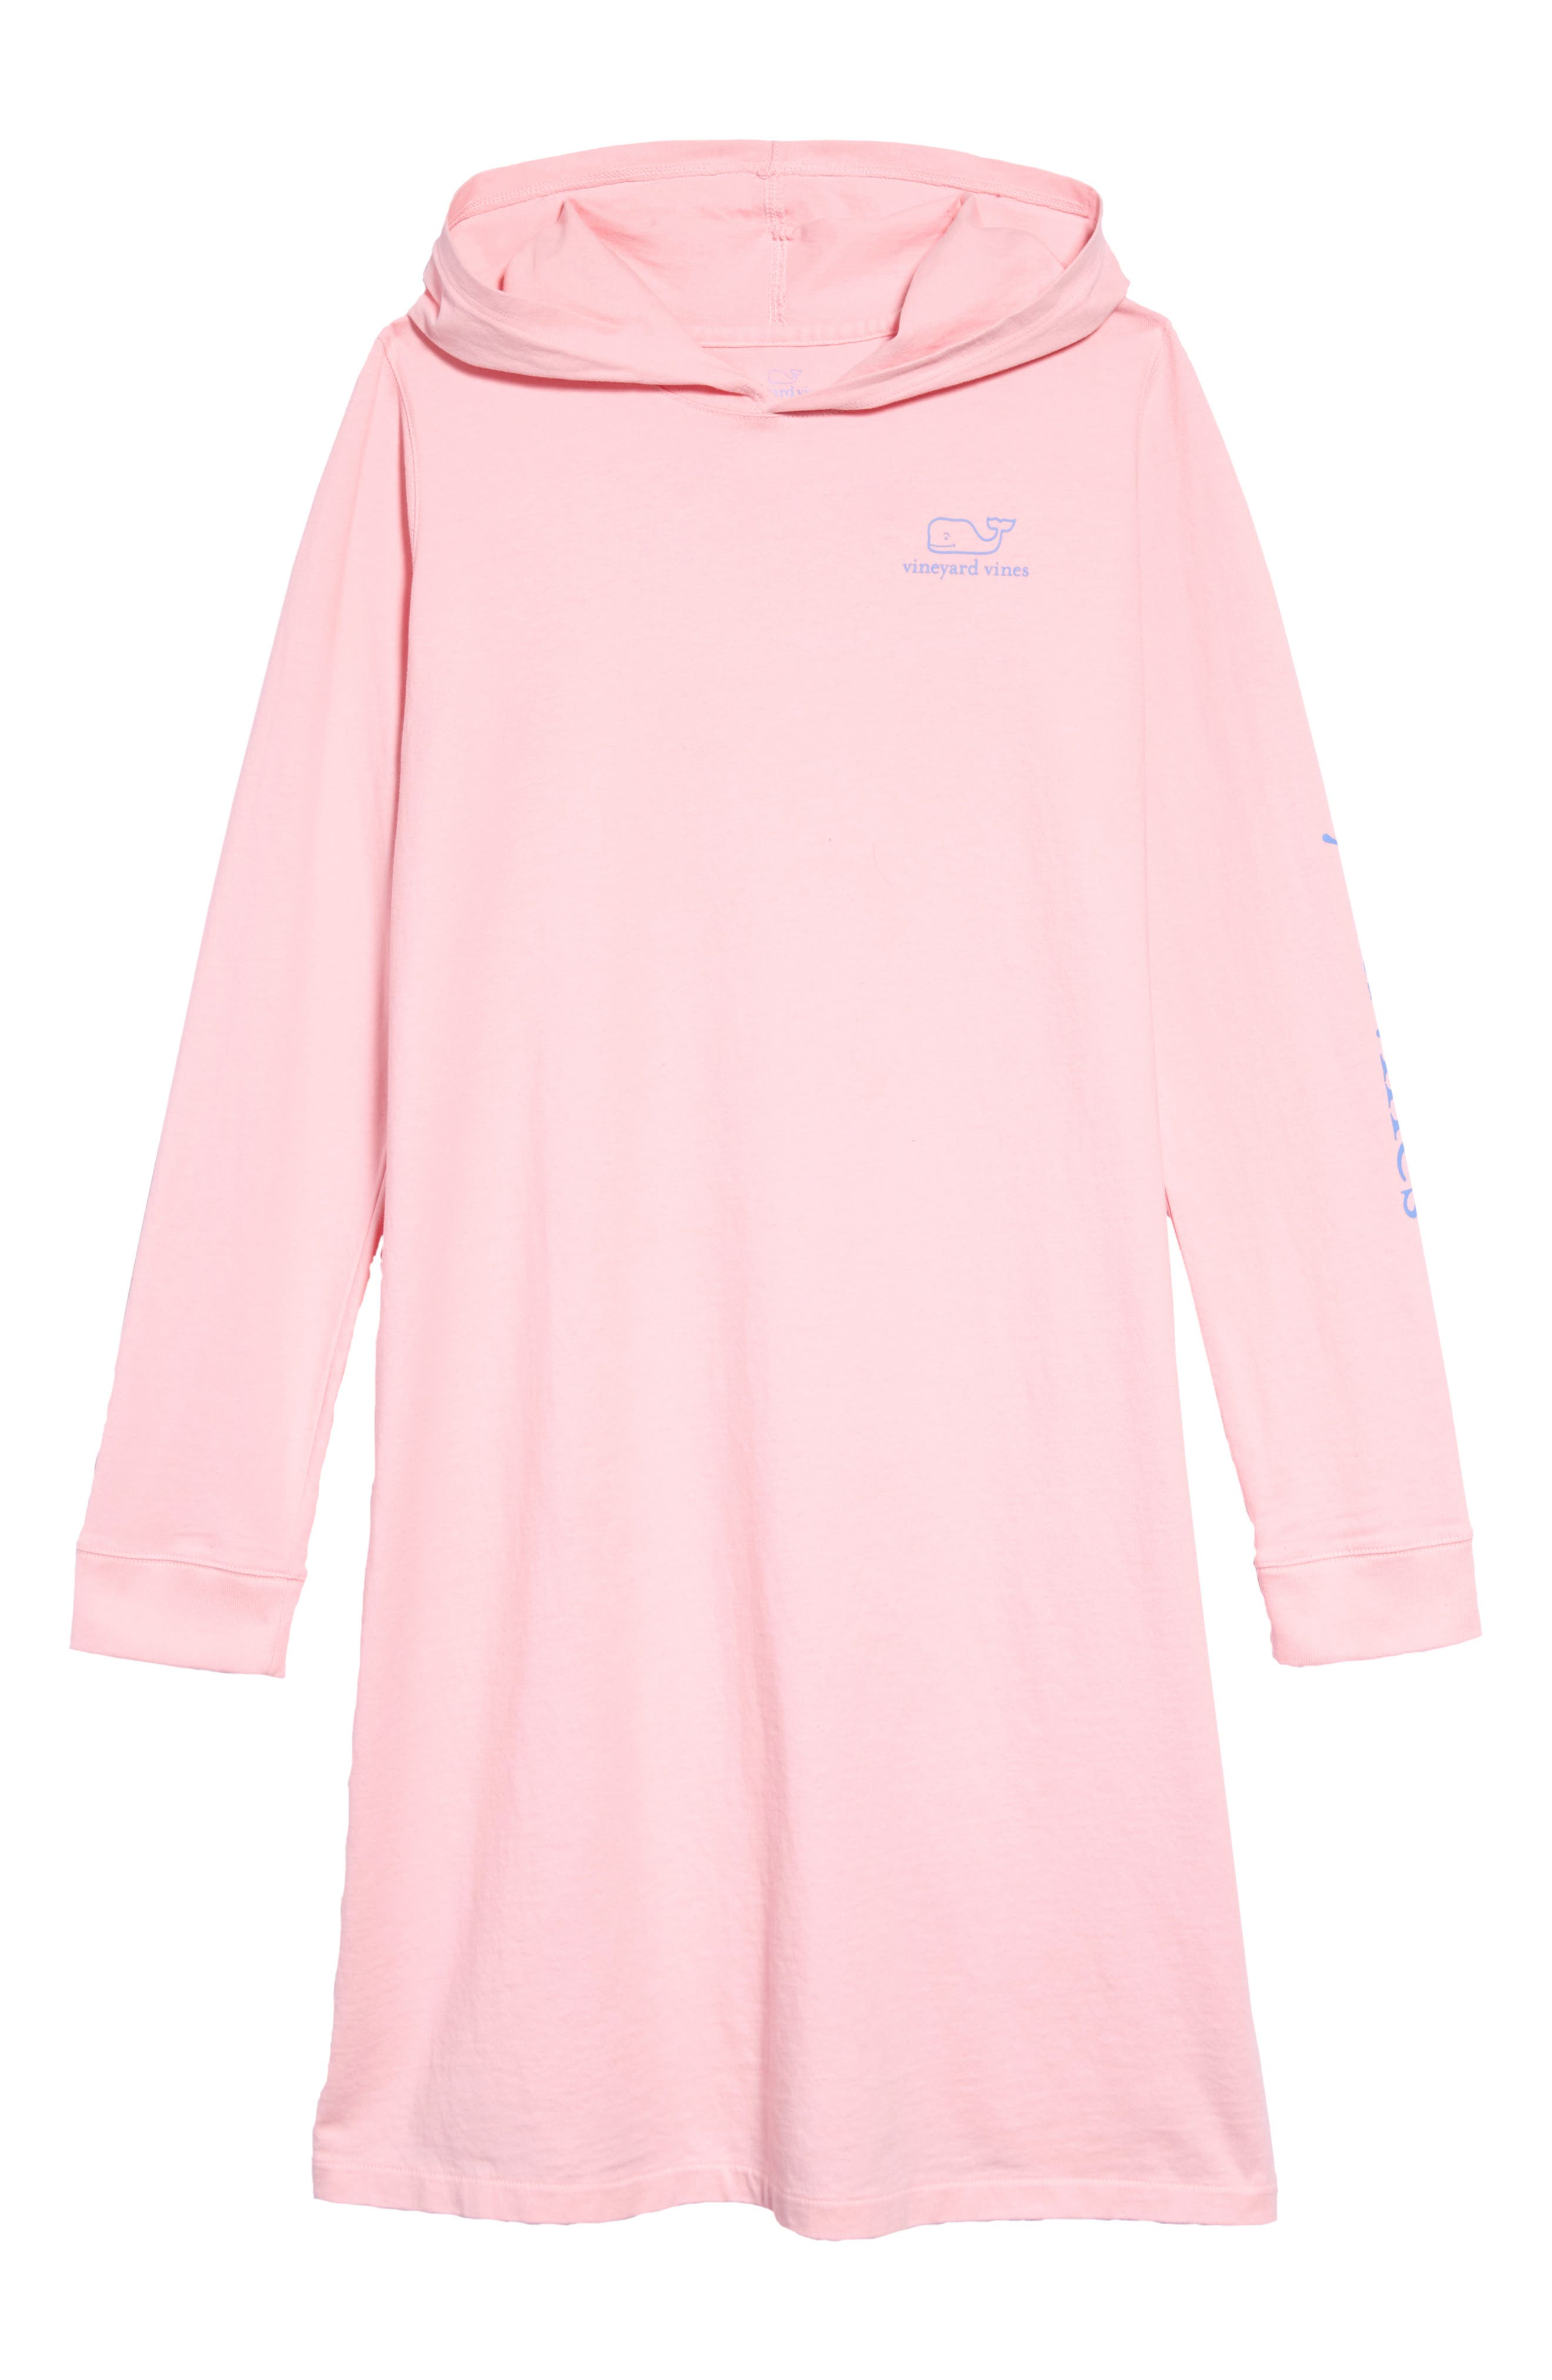 Toddler Girls Vineyard Vines Whale Hooded Tee Dress Size 4T  Pink